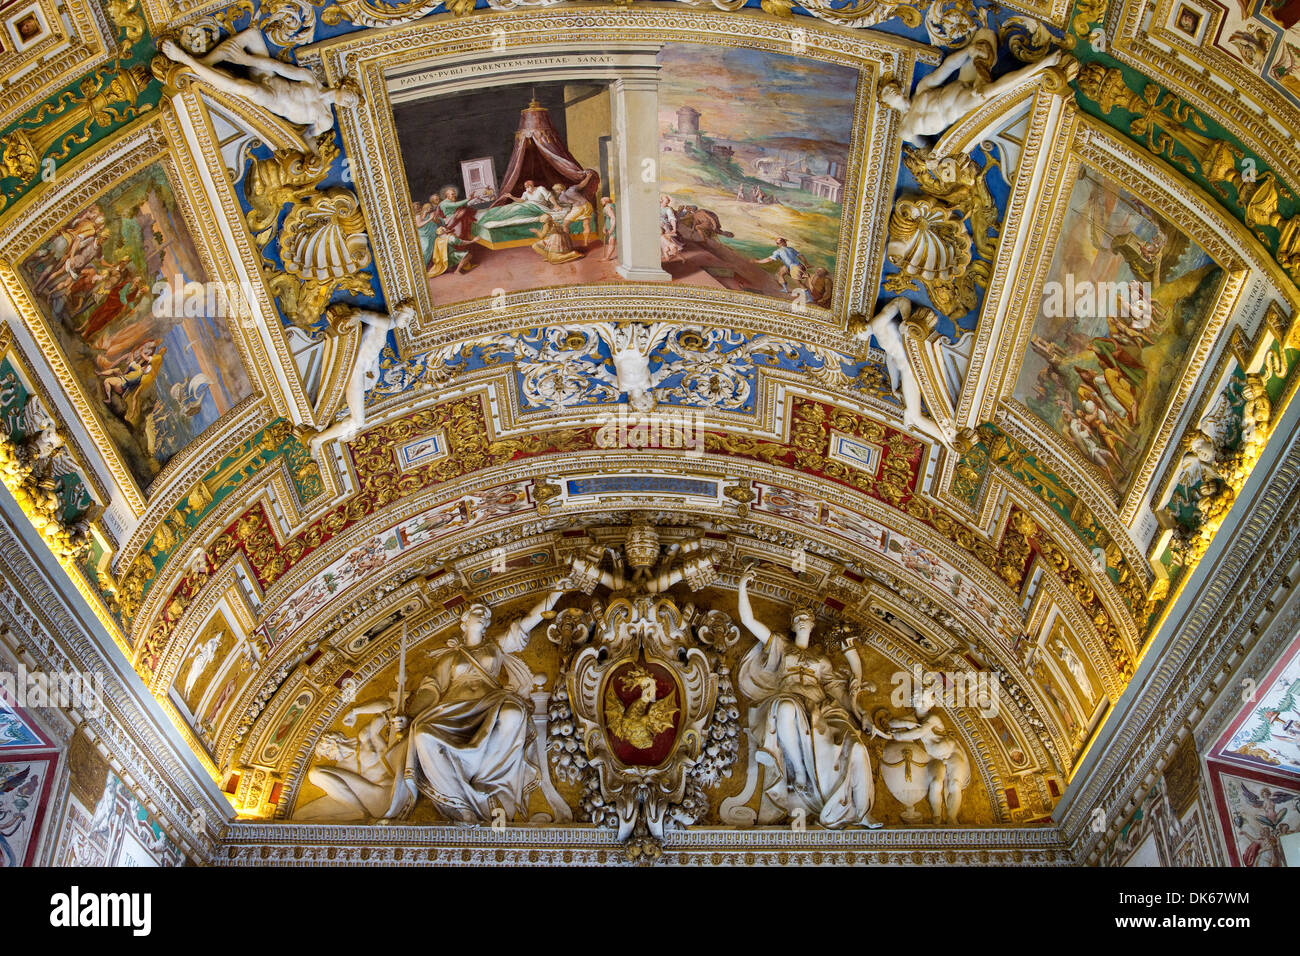 Vaulted ceiling of the The Gallery of Maps (Galleria delle carte geografiche) in the Vatican Museums, Vatican City. - Stock Image